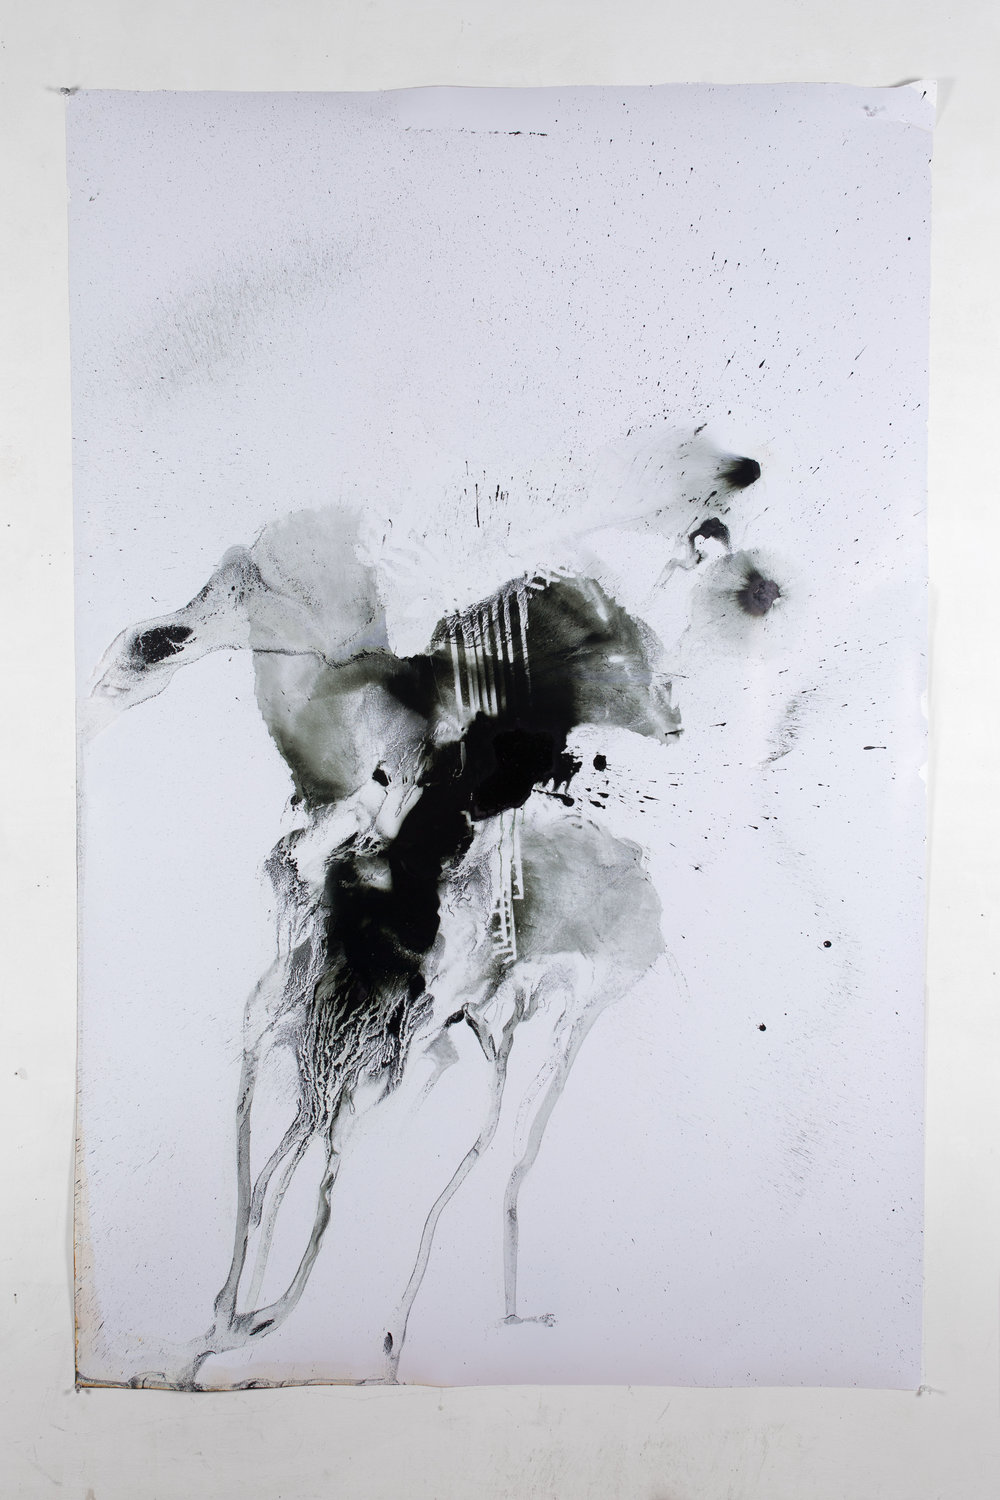 Untitled, 69''x44'', 2016, recycled printer ink and pepper spray on Premium Luster Photo Paper 260